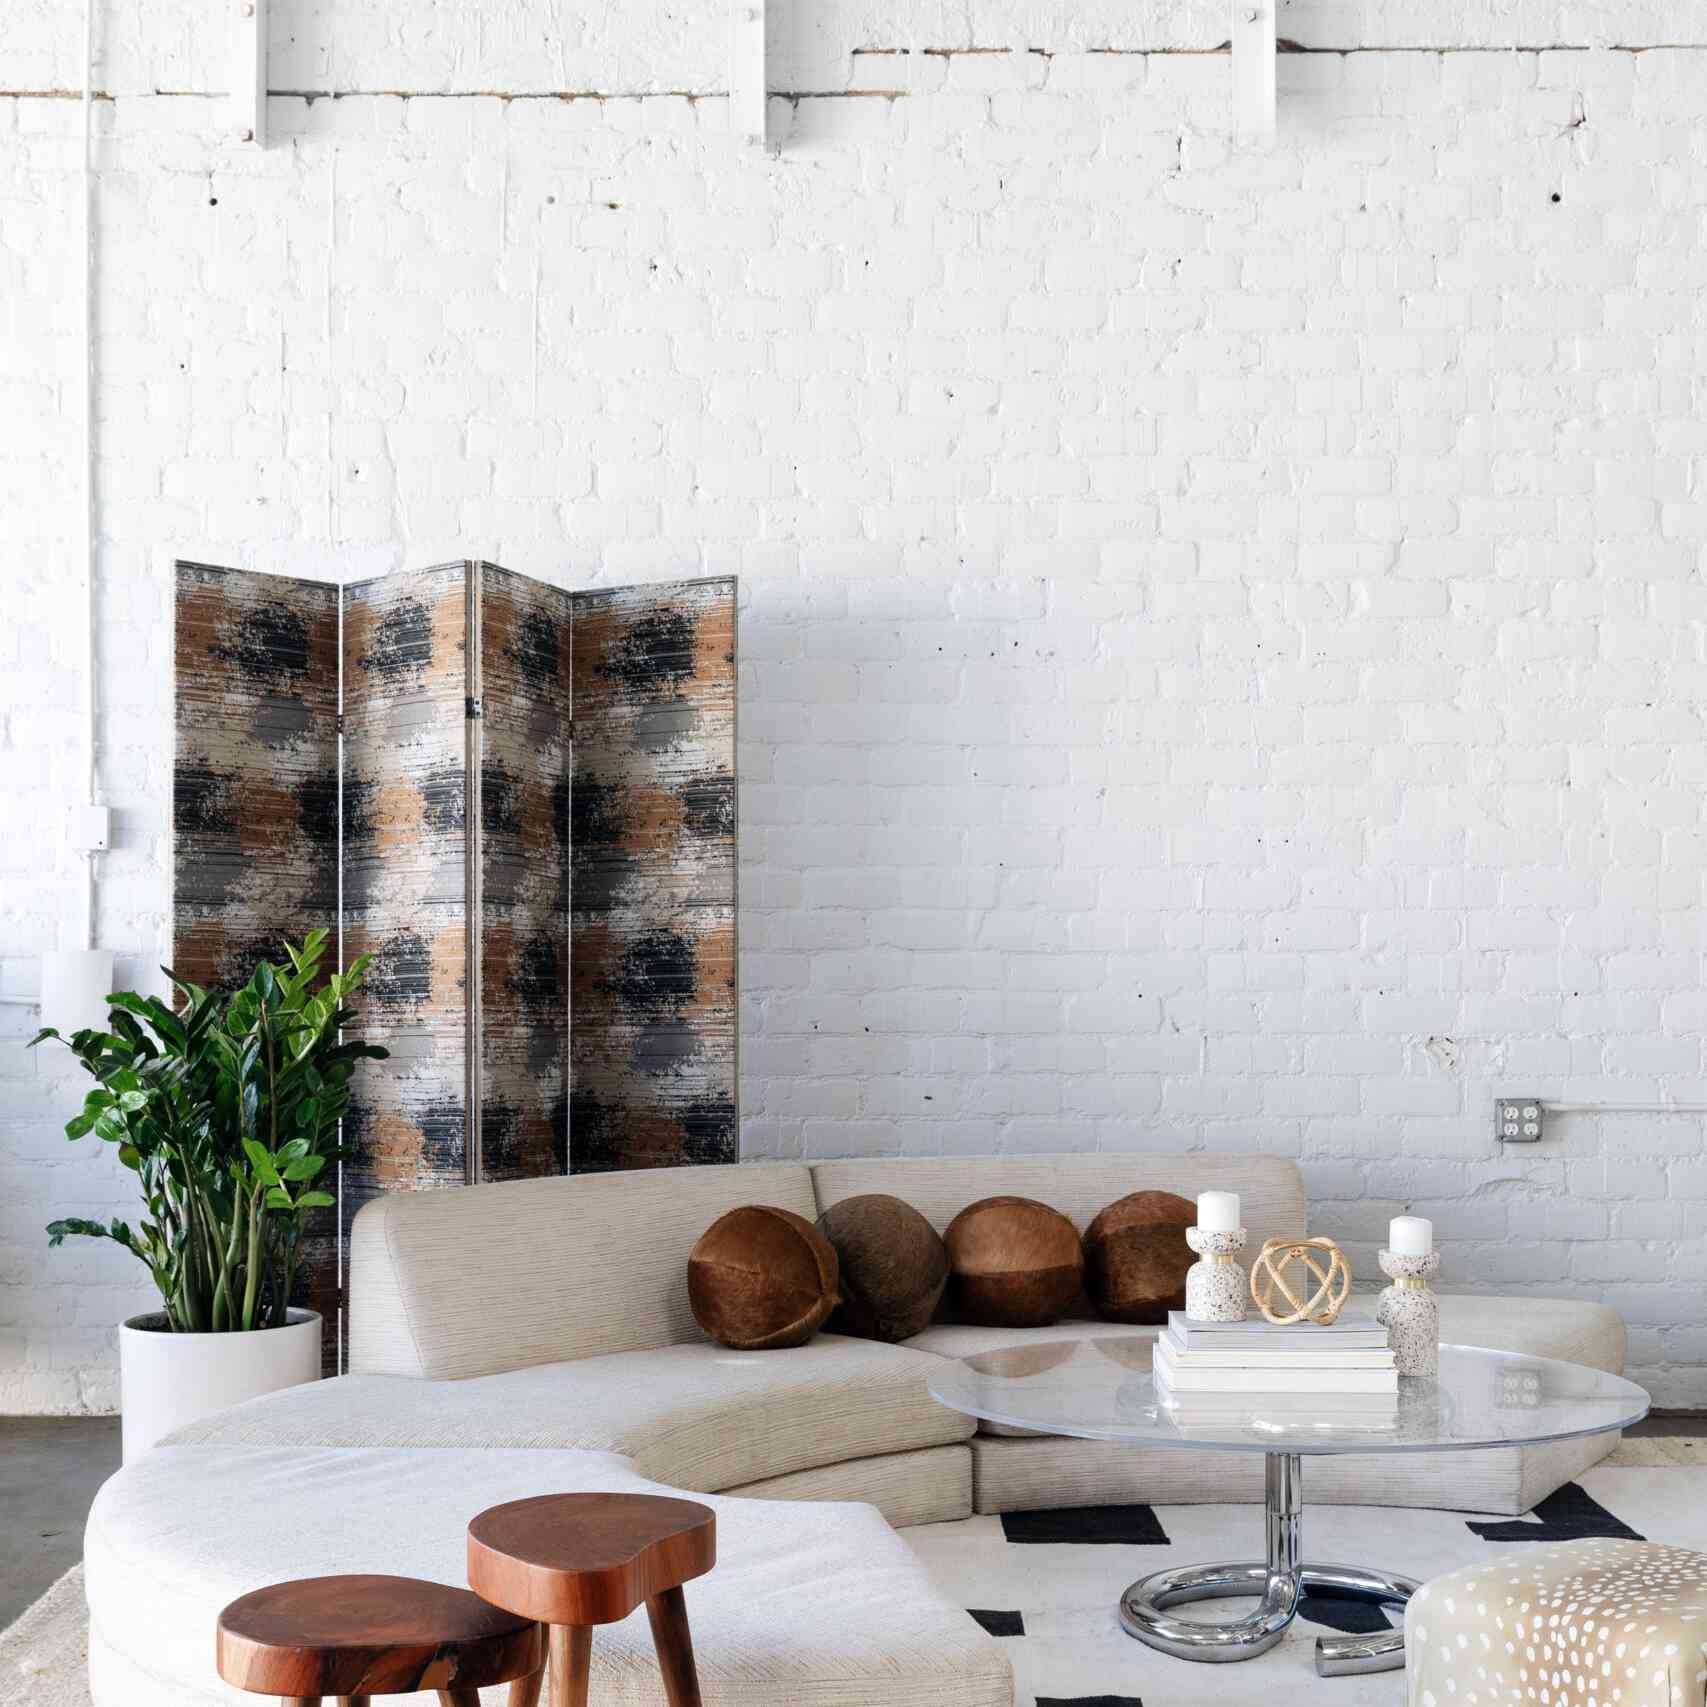 An industrial living room filled with industrial and earthy furniture